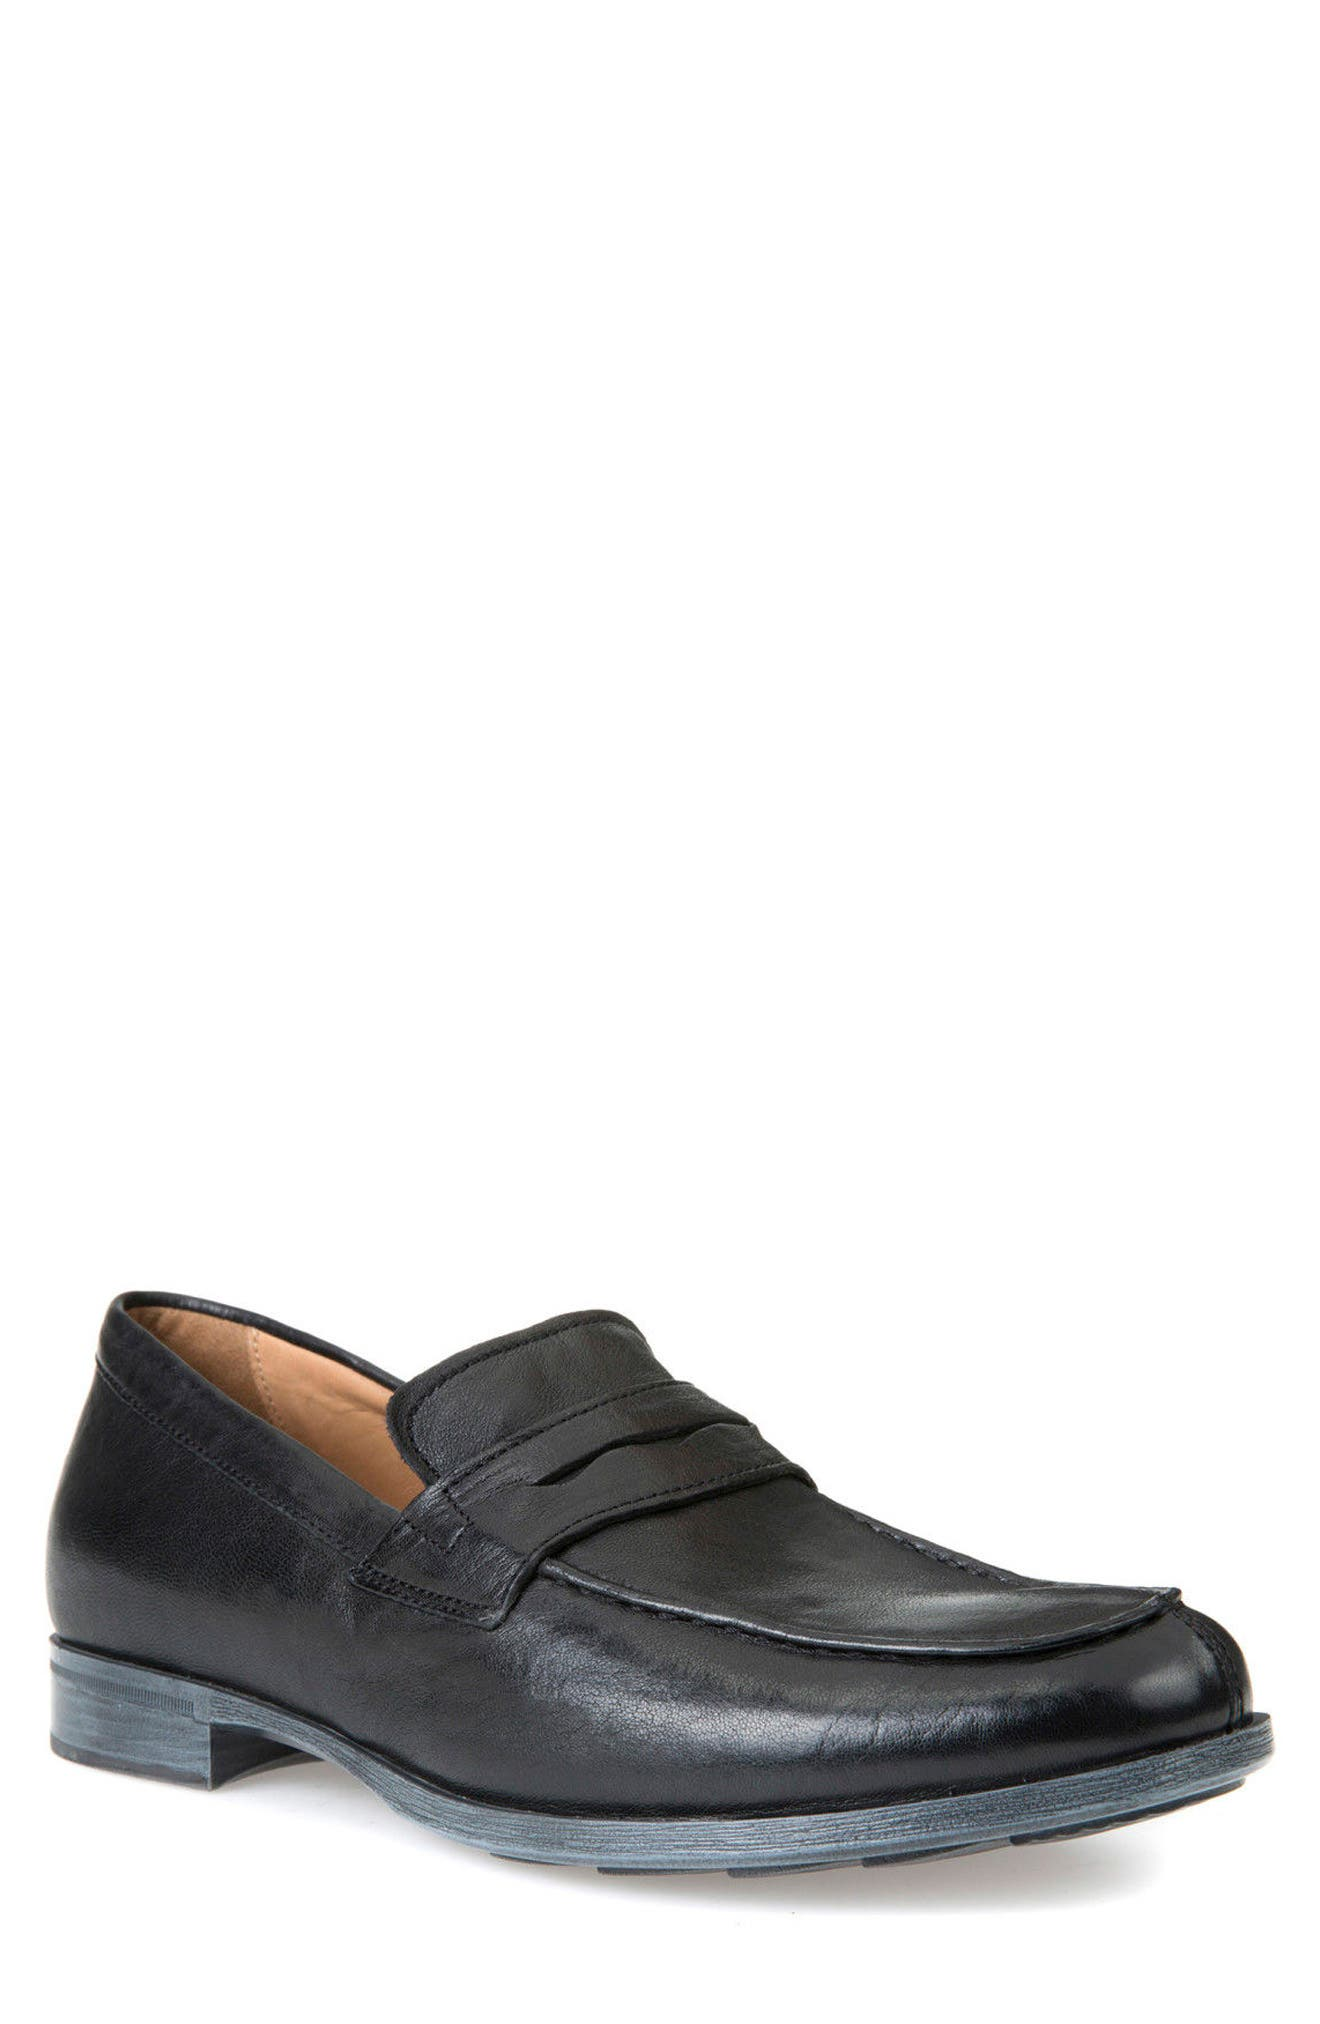 Besmington 6 Penny Loafer,                         Main,                         color, Black Leather